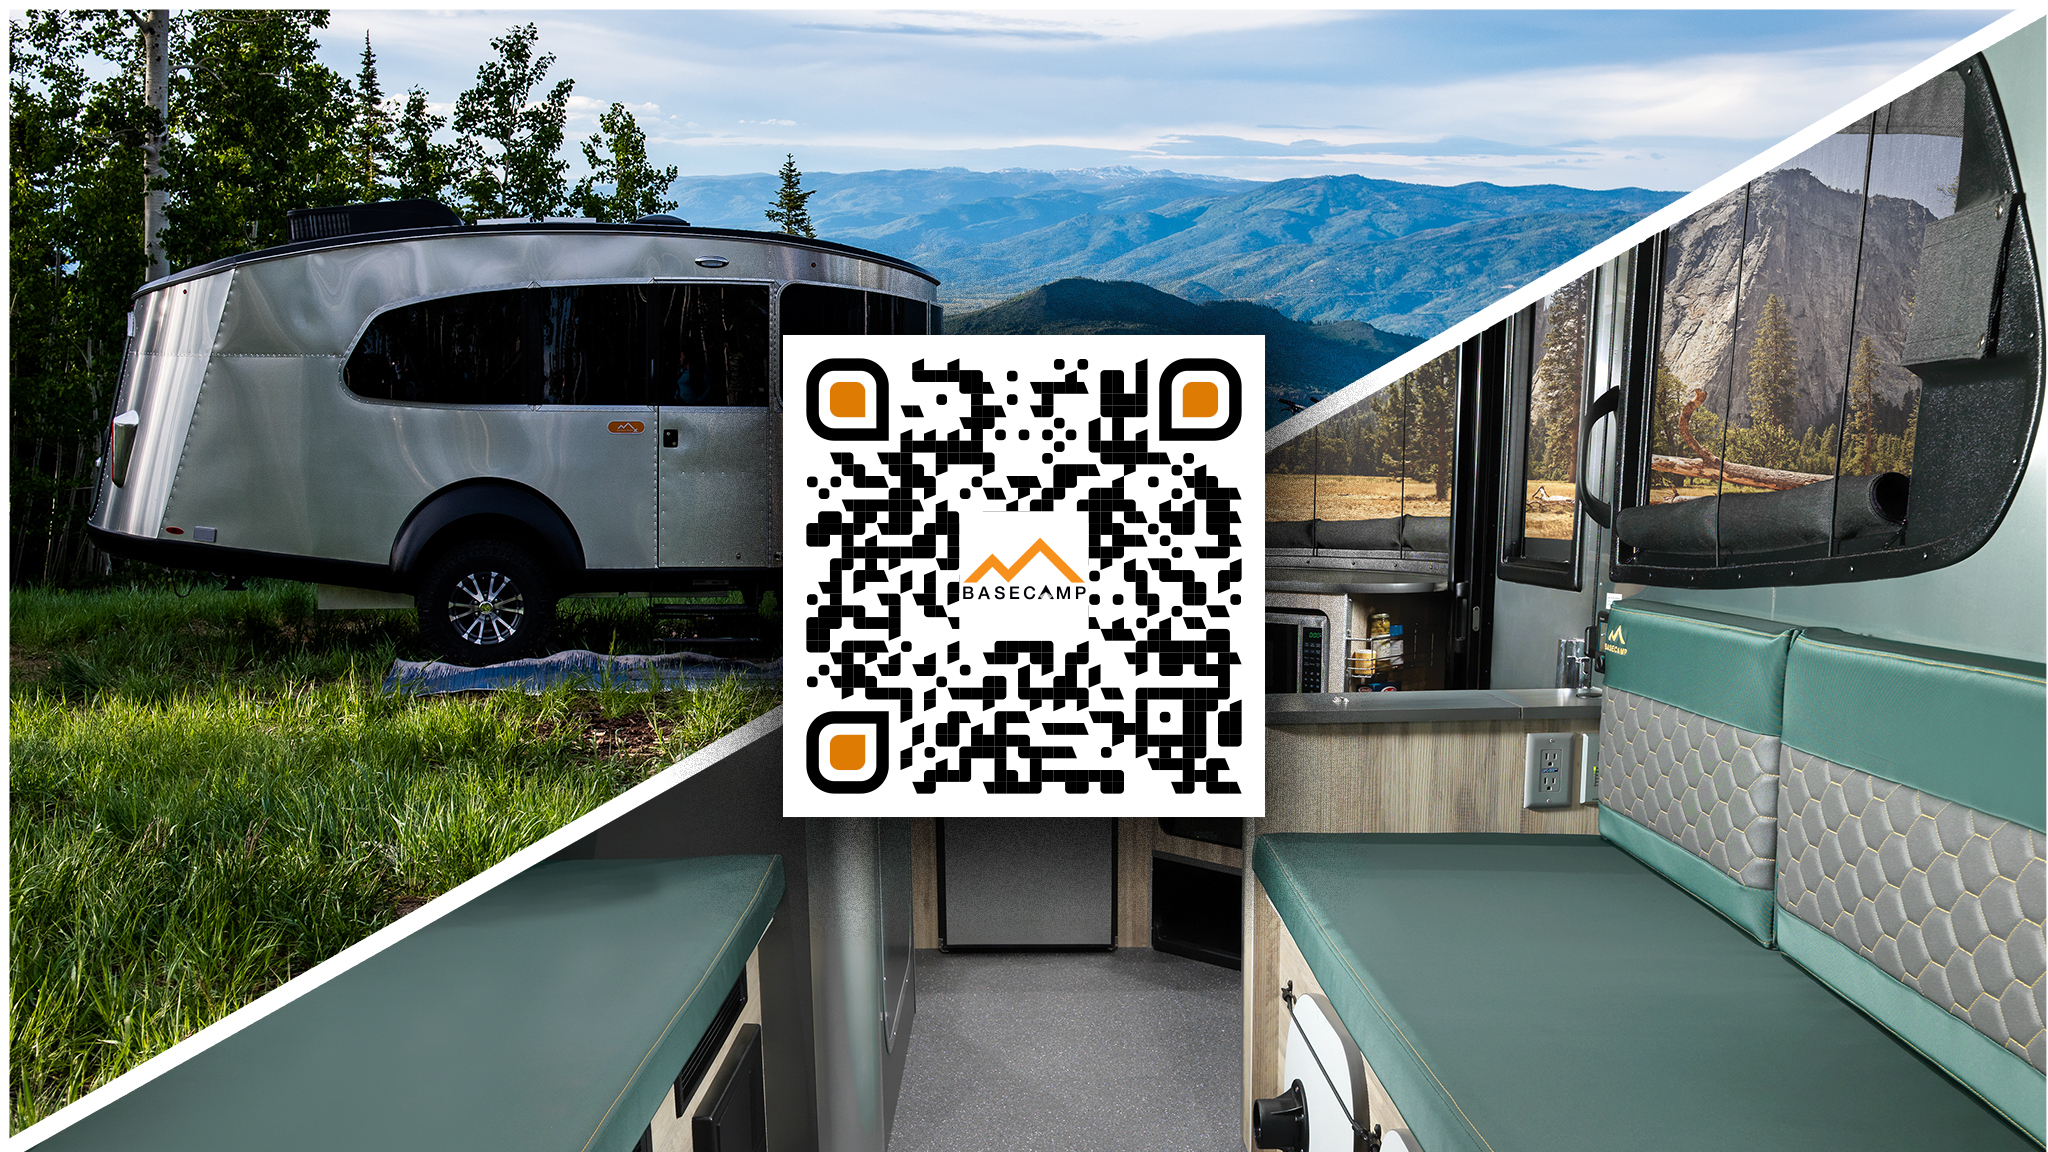 Basecamp-QR-Code-Interior-and-Exterior-Feature